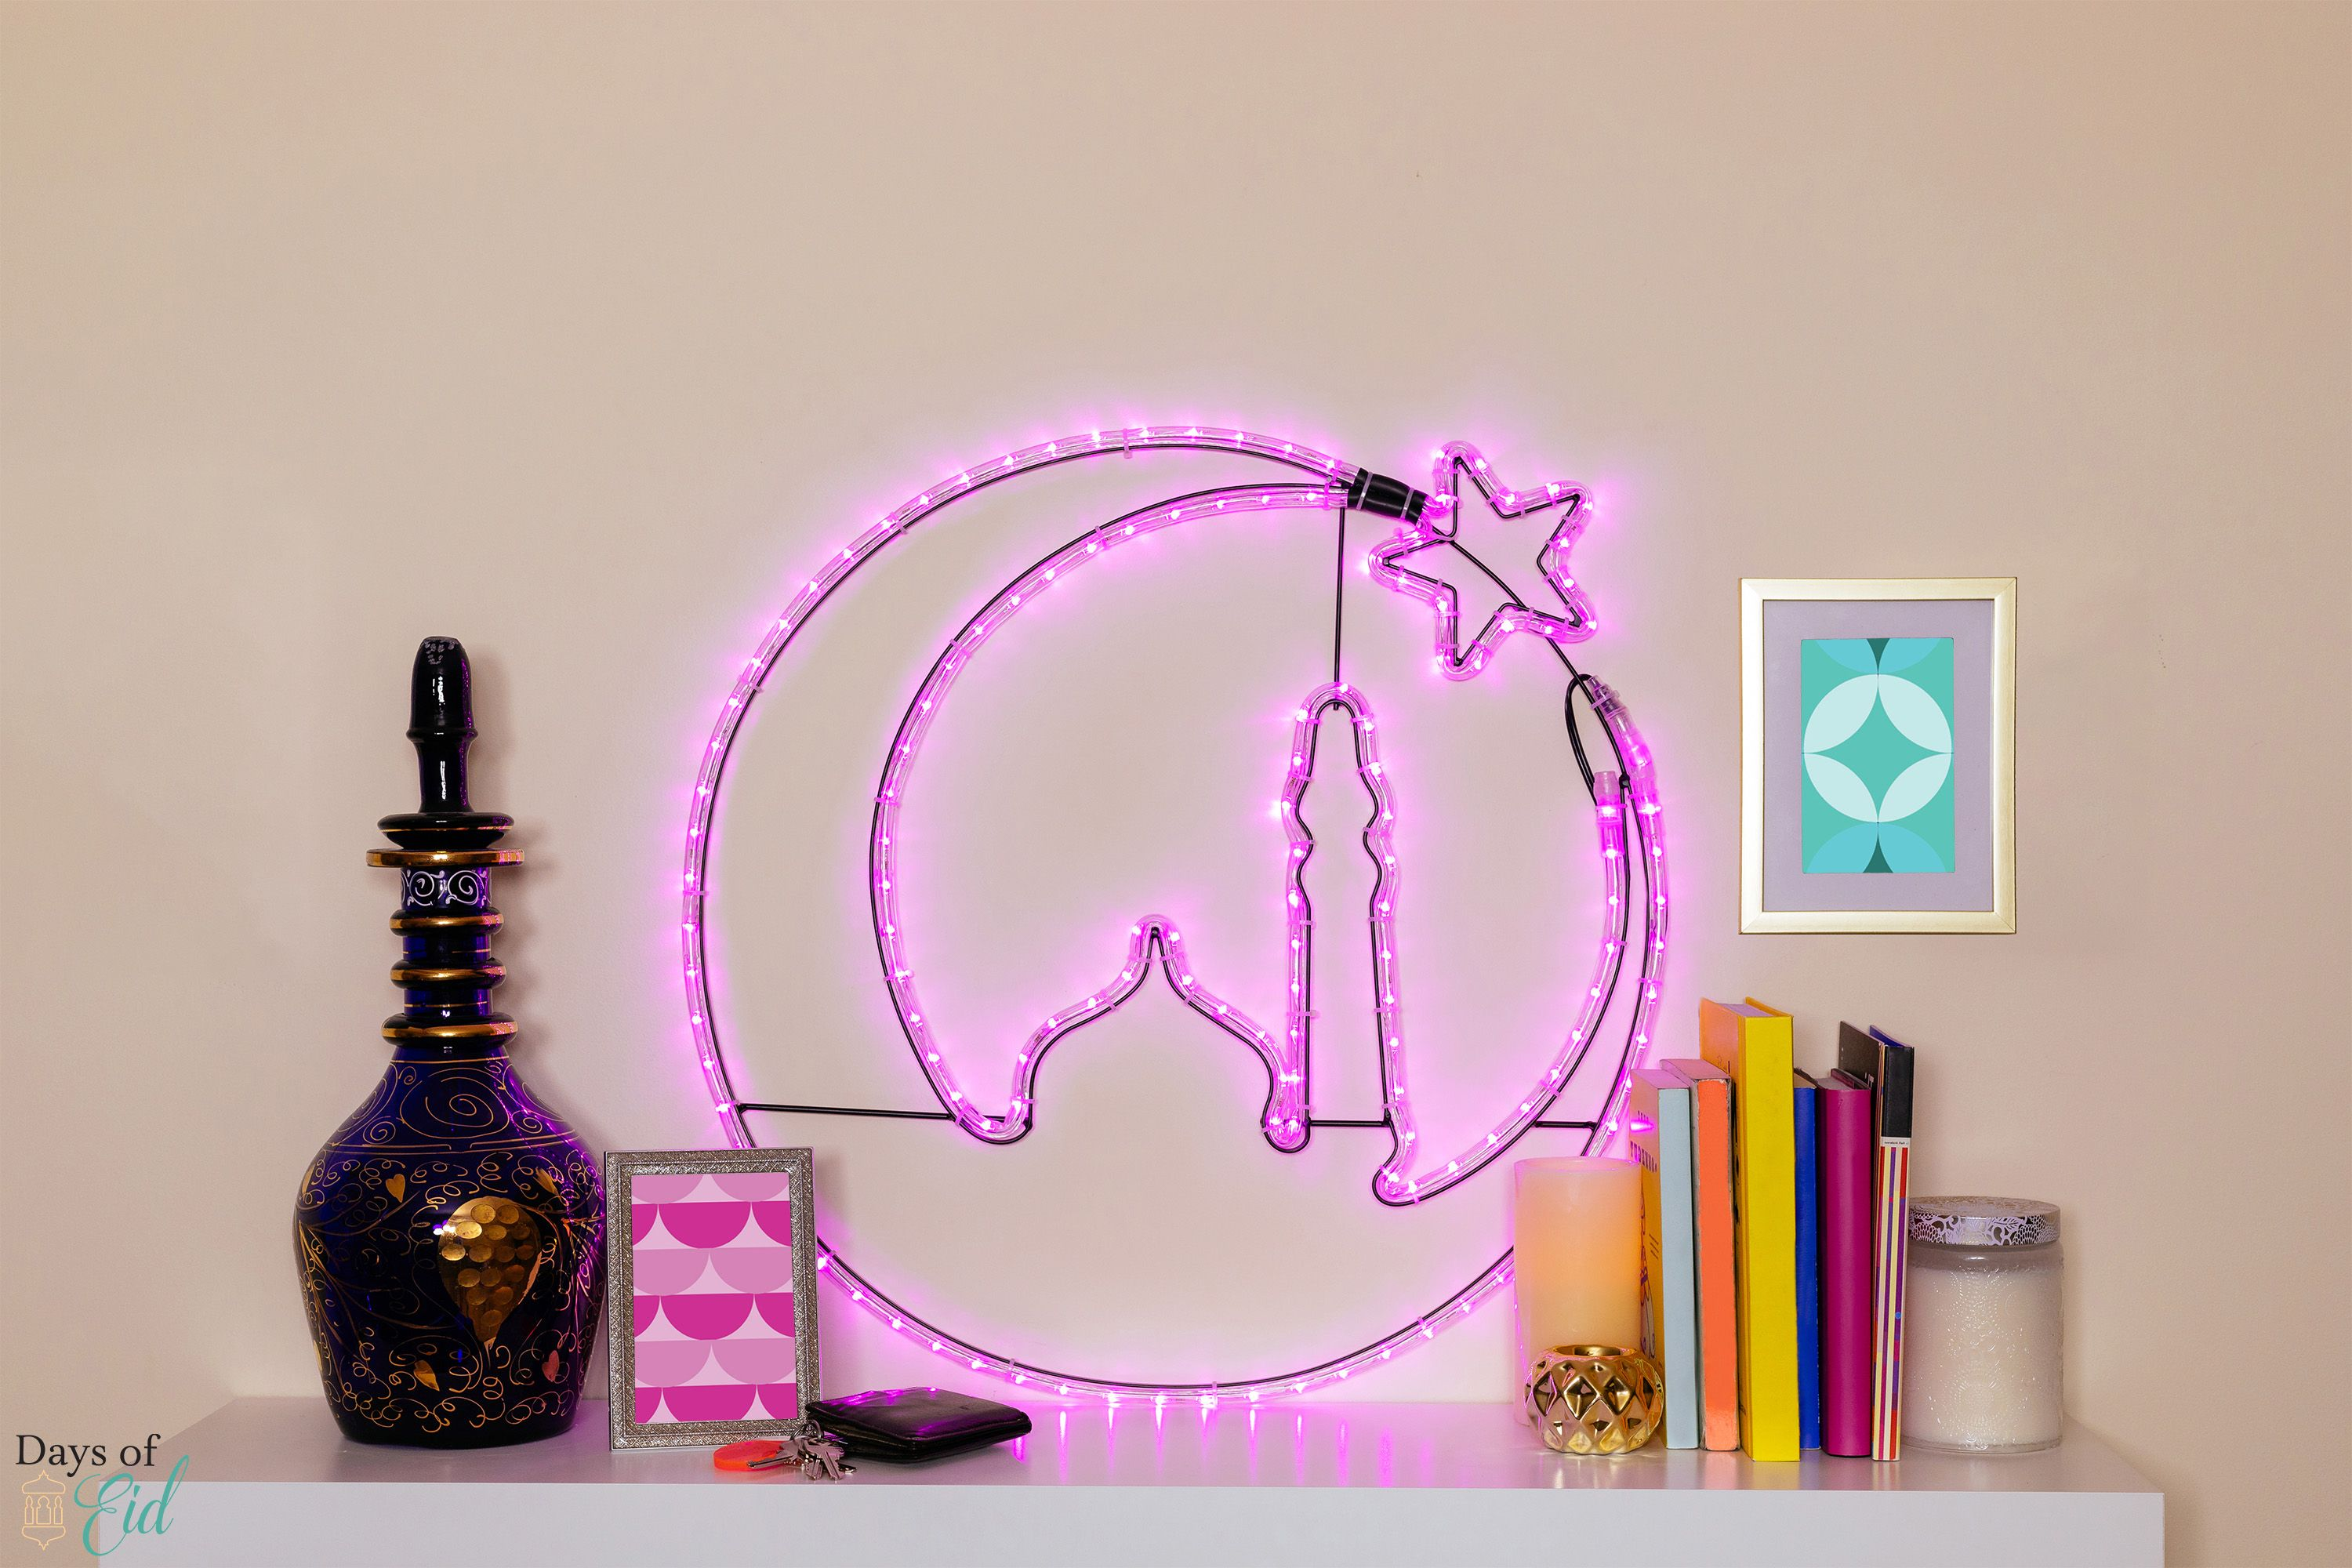 Crescent Moon With Mosque Silhouette Led Light